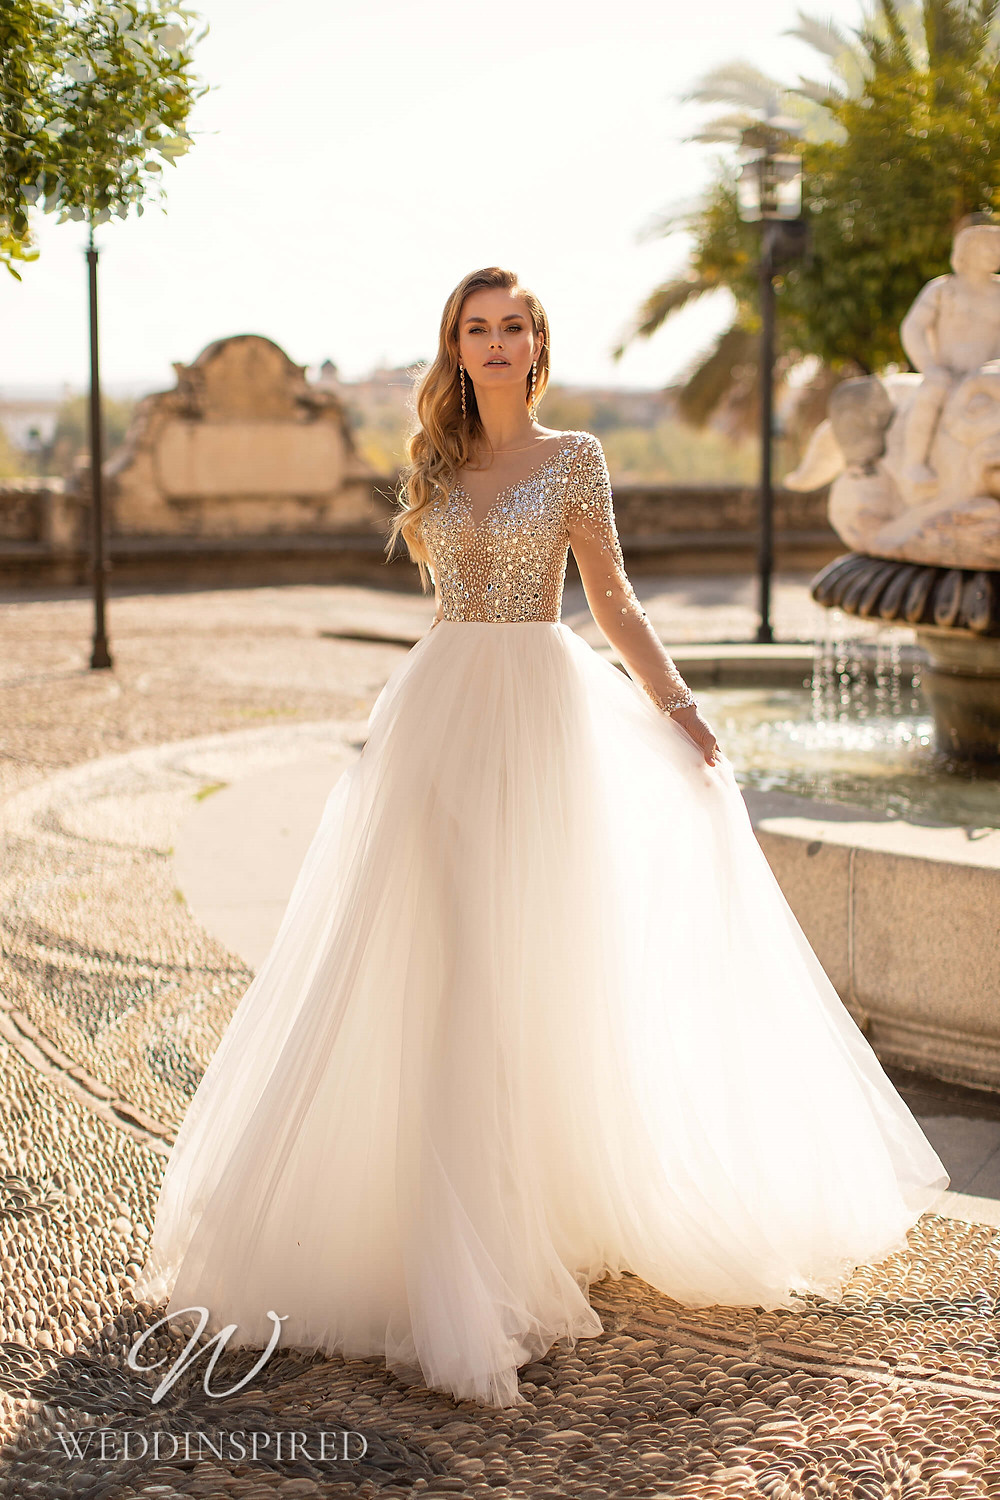 An Essential by Lussano 2021 sparkly tulle A-line wedding dress